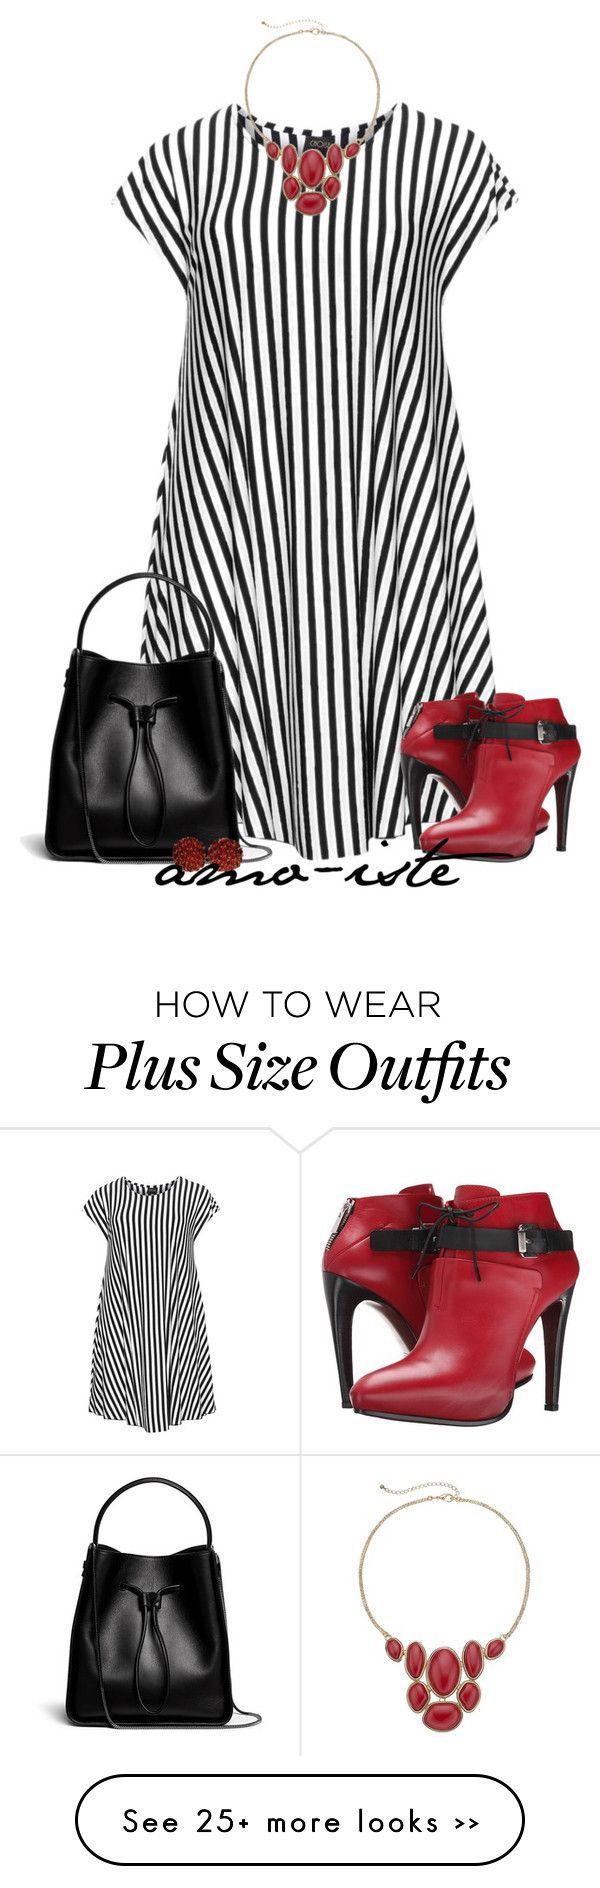 5-ways-to-wear-a-striped-garment-without-looking-frumpy